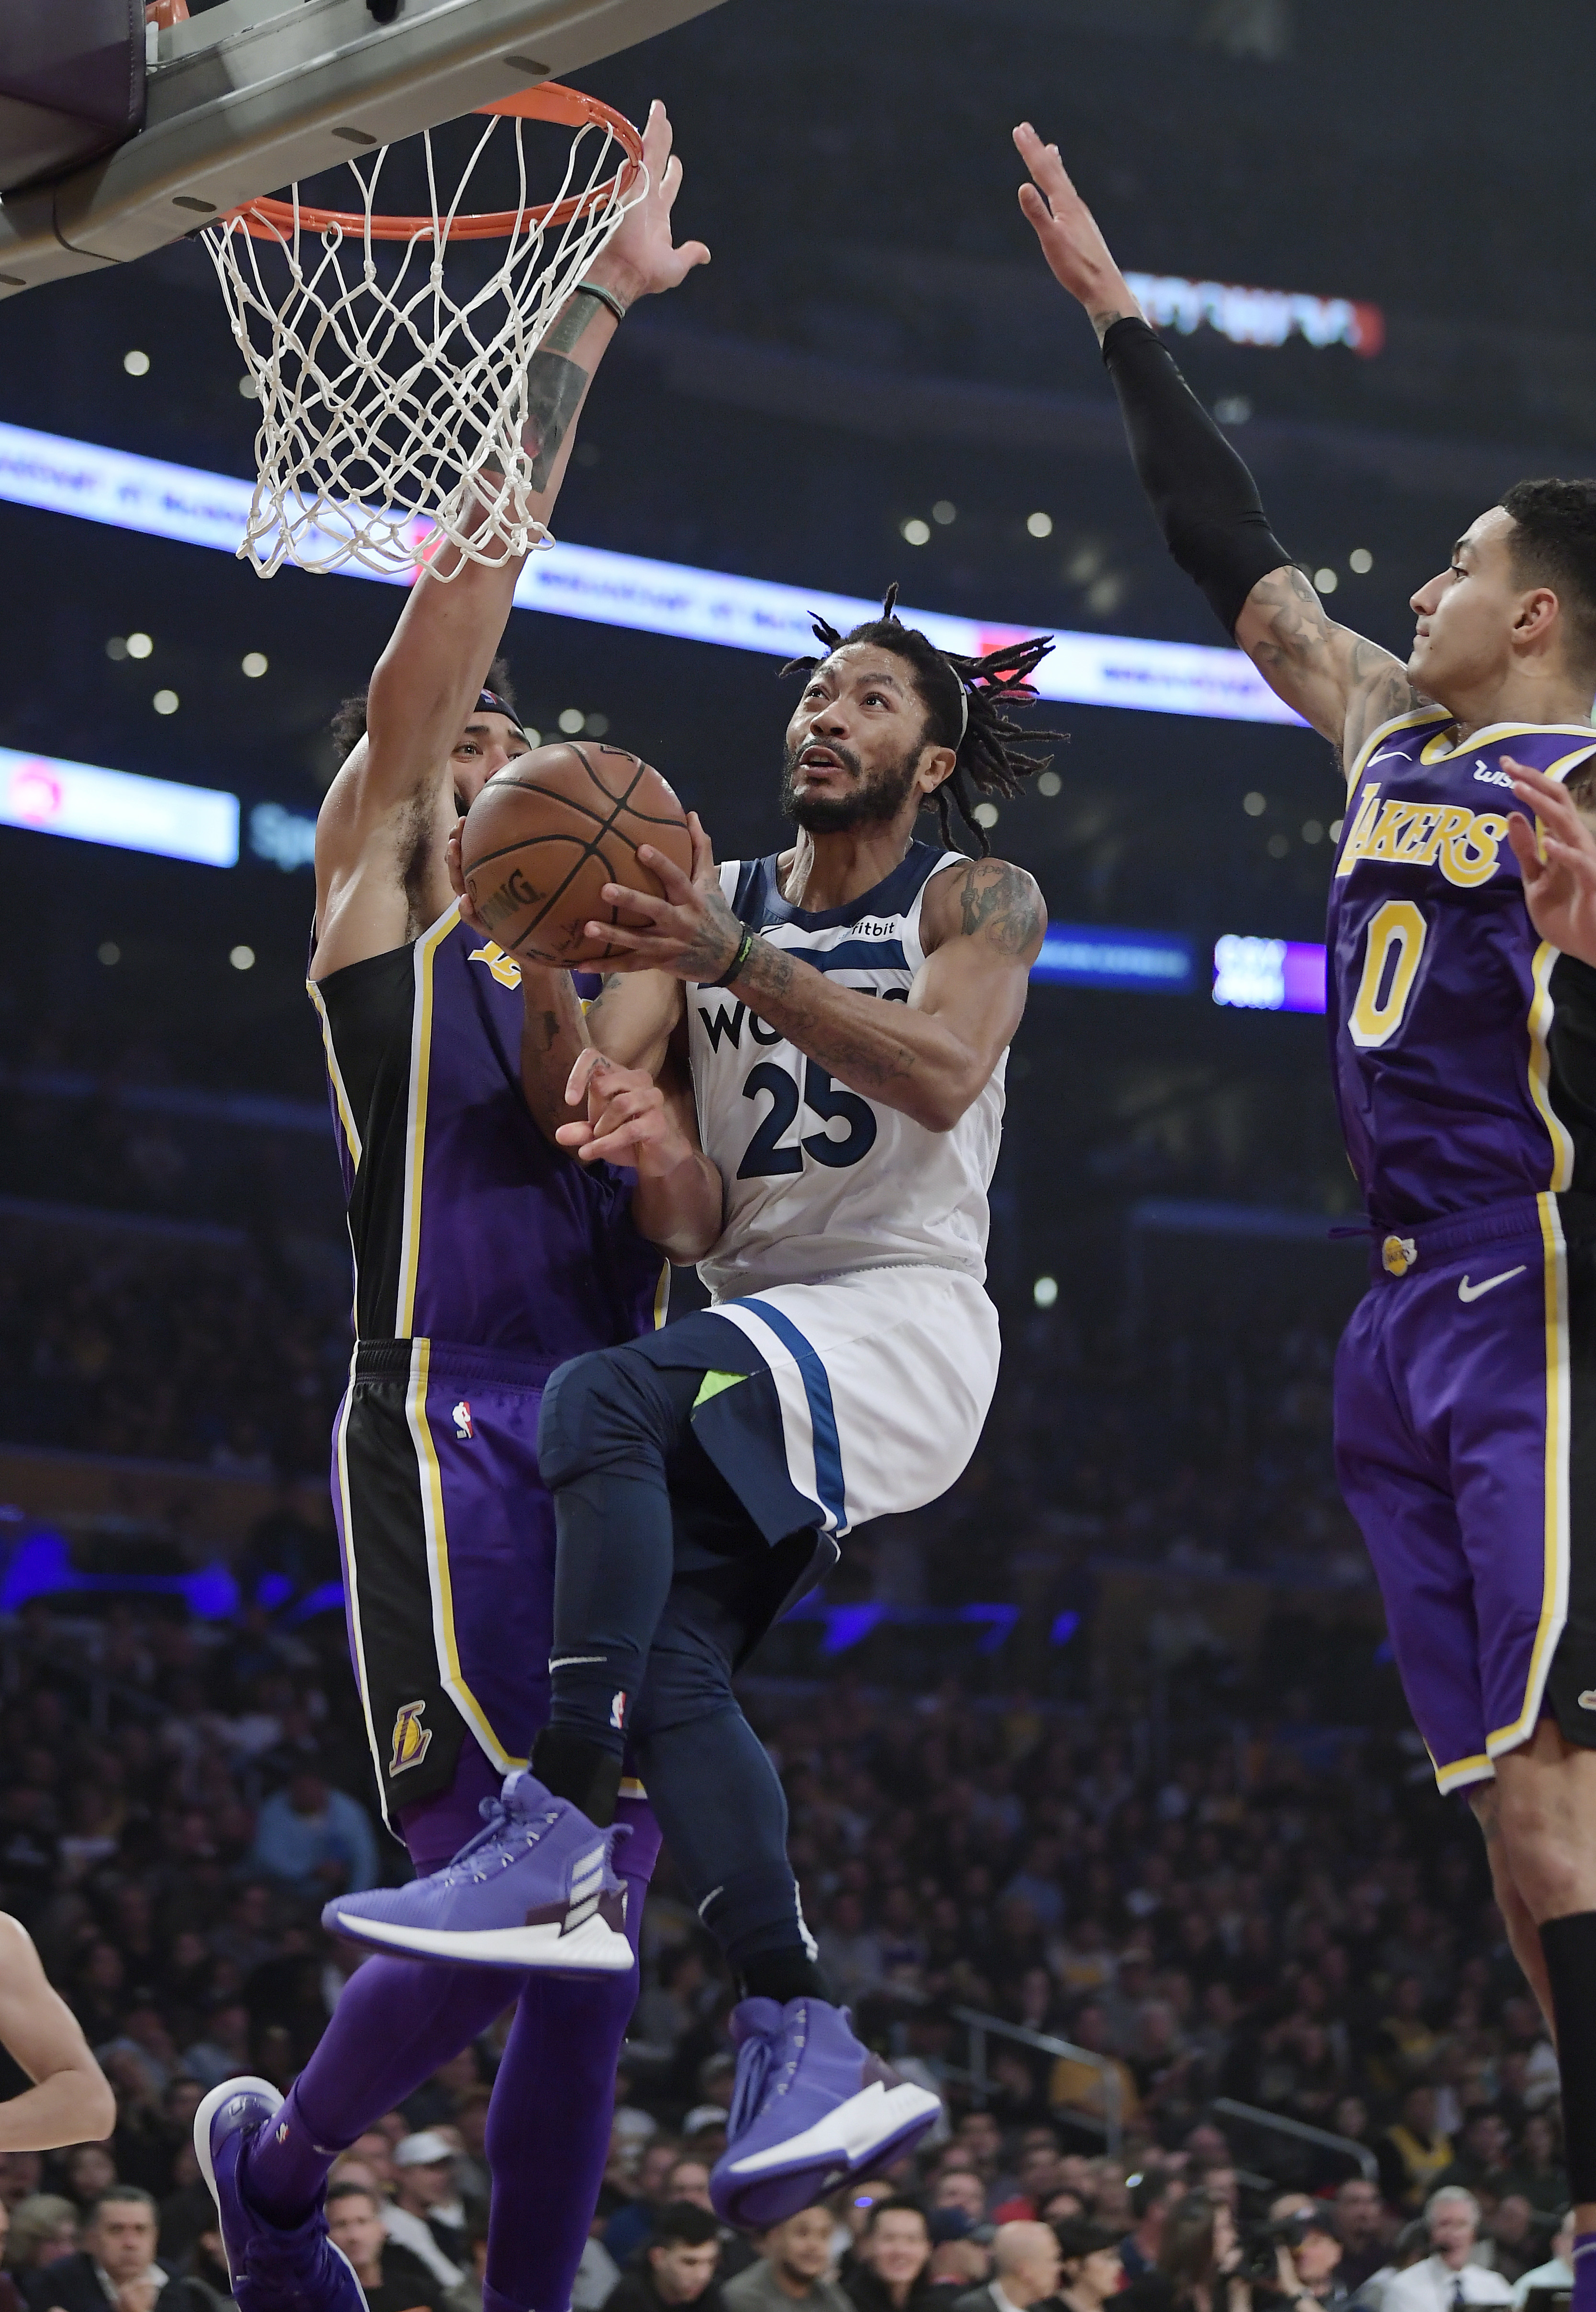 Minnesota Timberwolves guard Derrick Rose, center, goes to the basket as Los Angeles Lakers center JaVale McGee, left, and forward Kyle Kuzma defend during the first half of an NBA basketball game Wednesday, Nov. 7, 2018, in Los Angeles. (AP Photo/Mark J. Terrill)